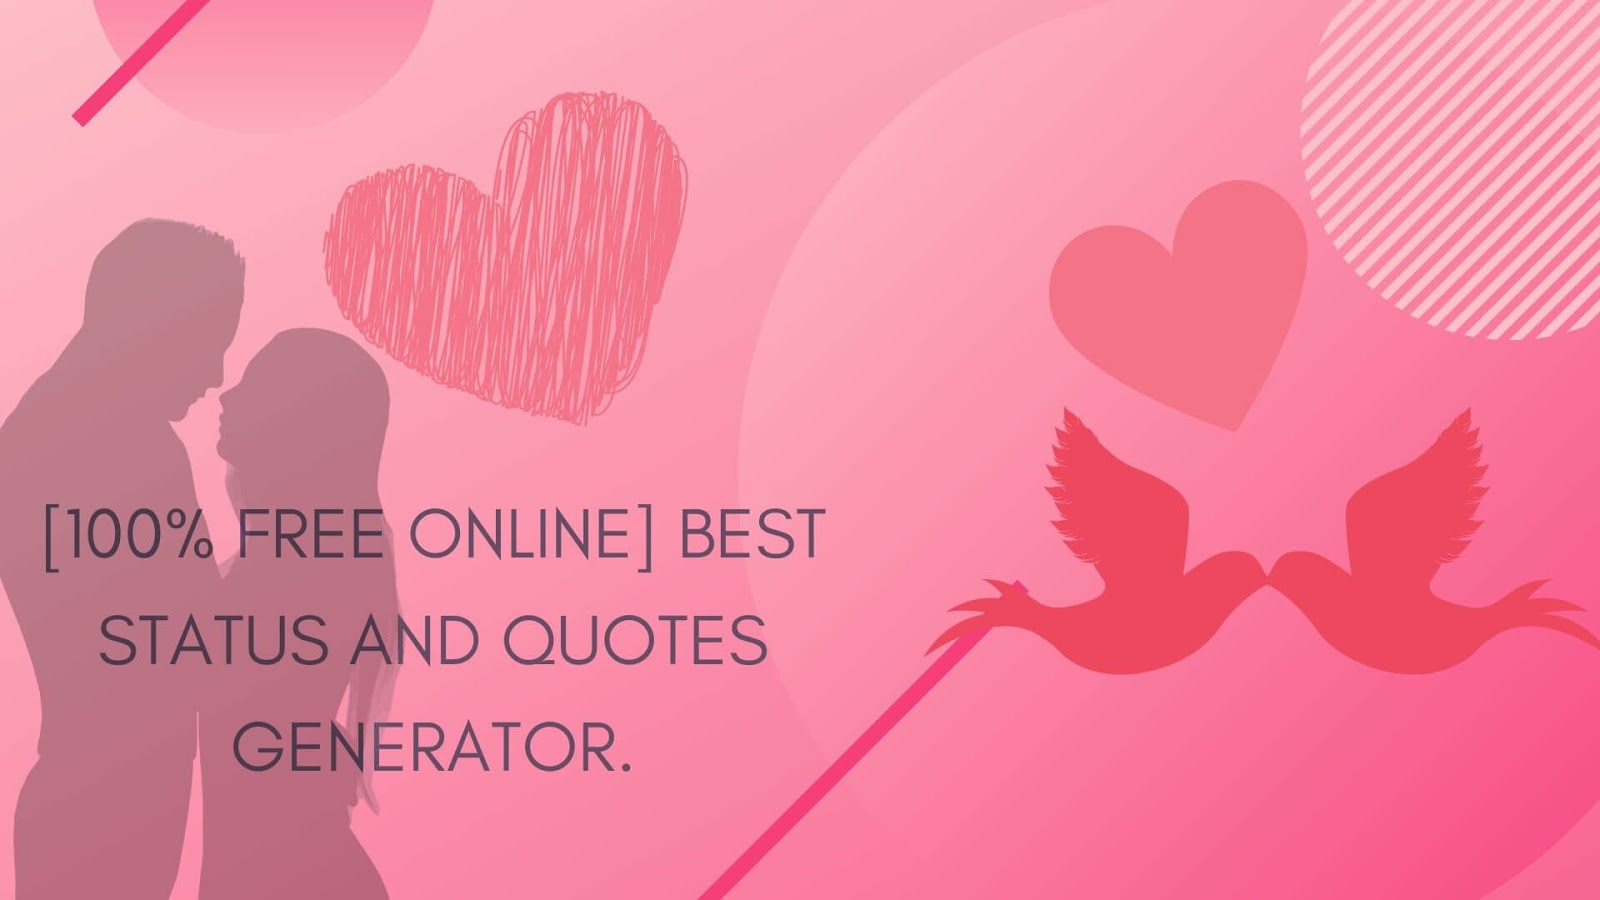 [100% FREE ONLINE] BEST STATUS AND QUOTES GENERATOR